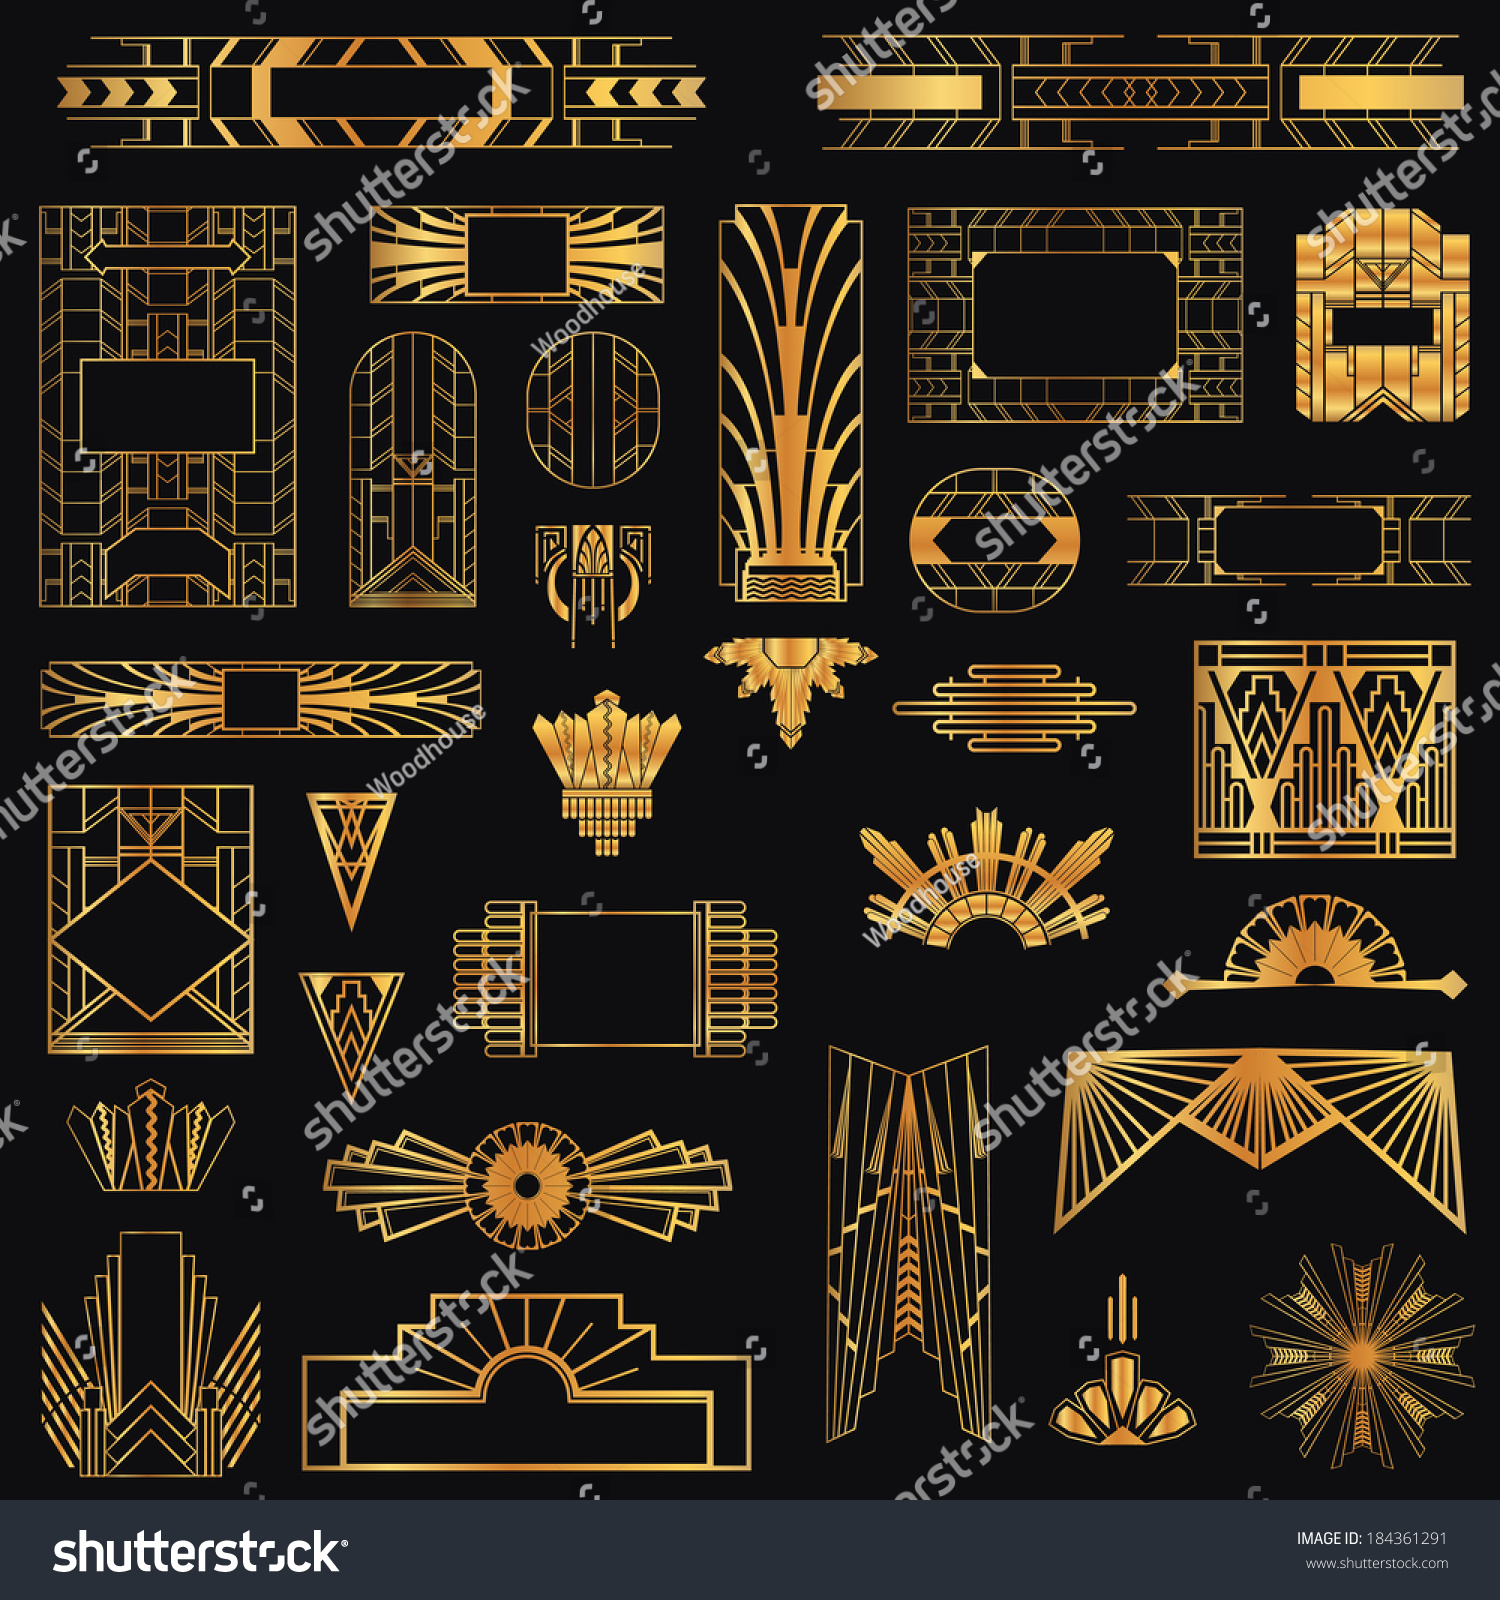 Art deco vintage frames design elements stock vector for Design art deco